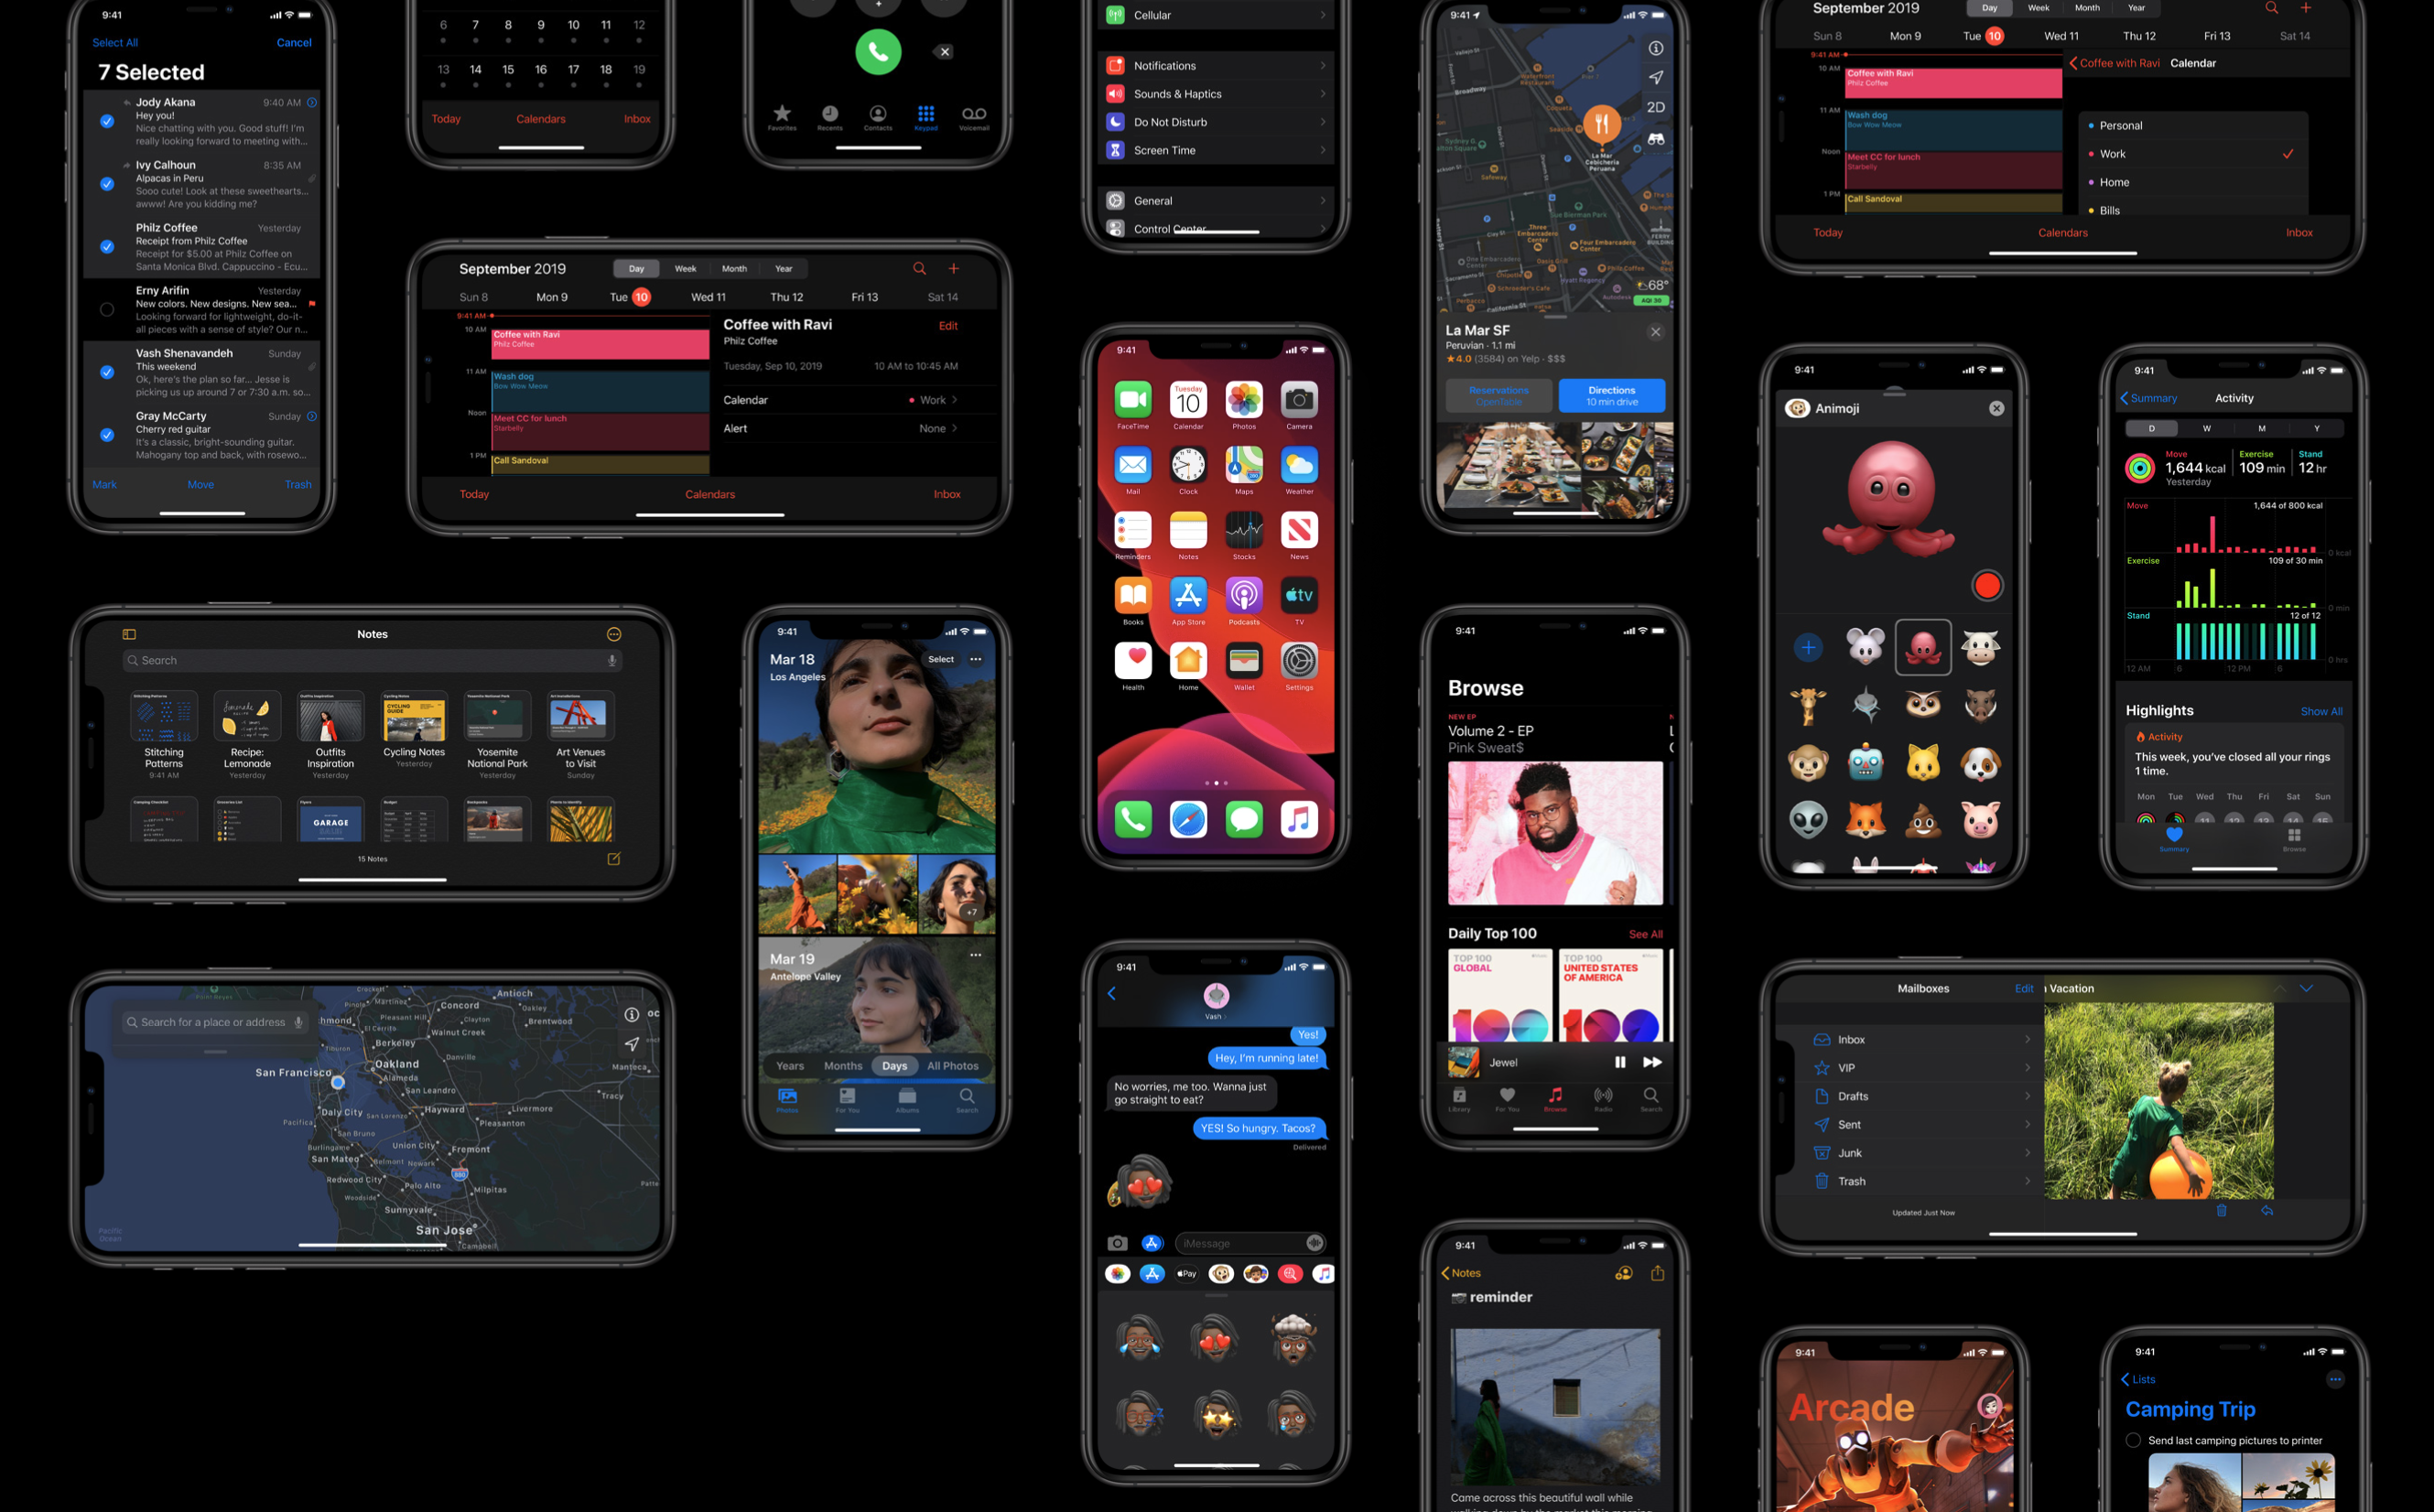 Apple Releases iOS 13.3.1 and iPadOS 13.3.1 in 2020